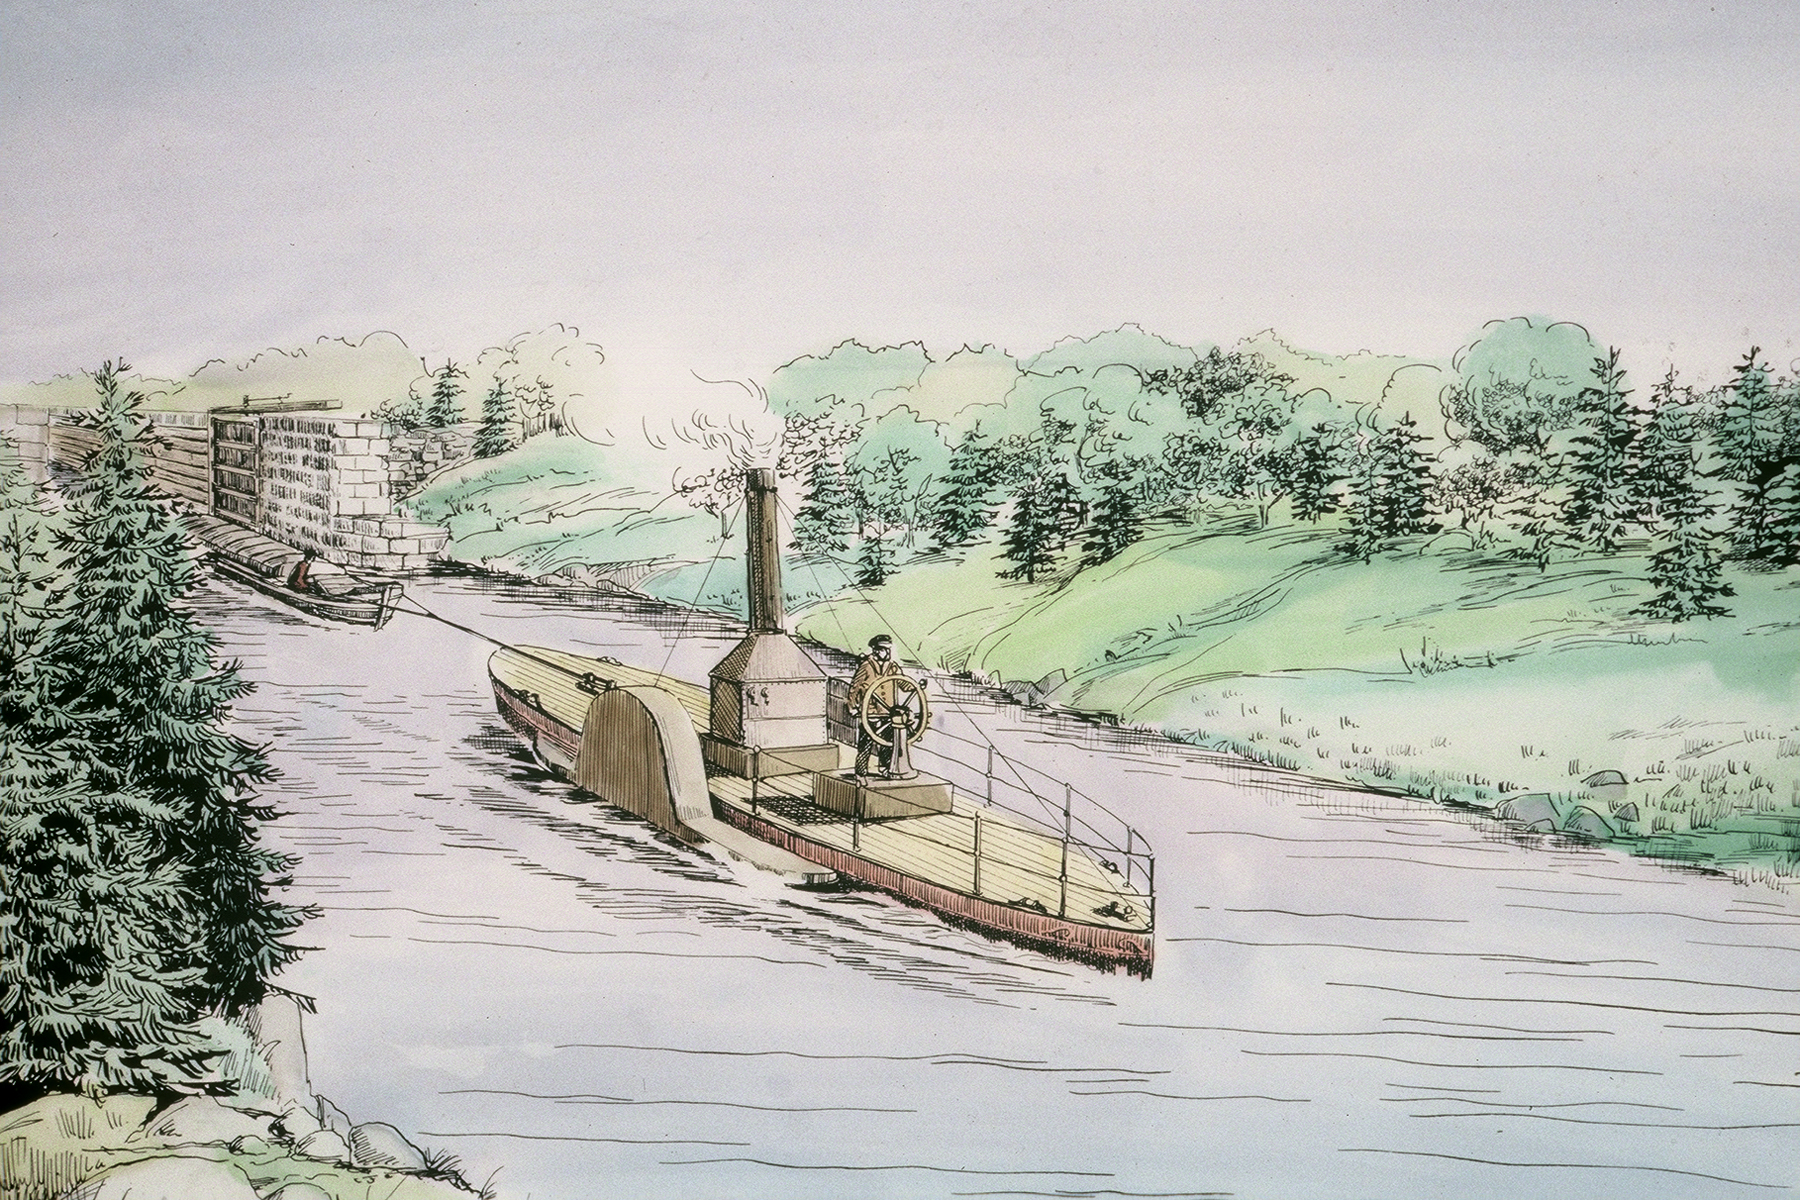 Sketch of the Avery working on the Canal.